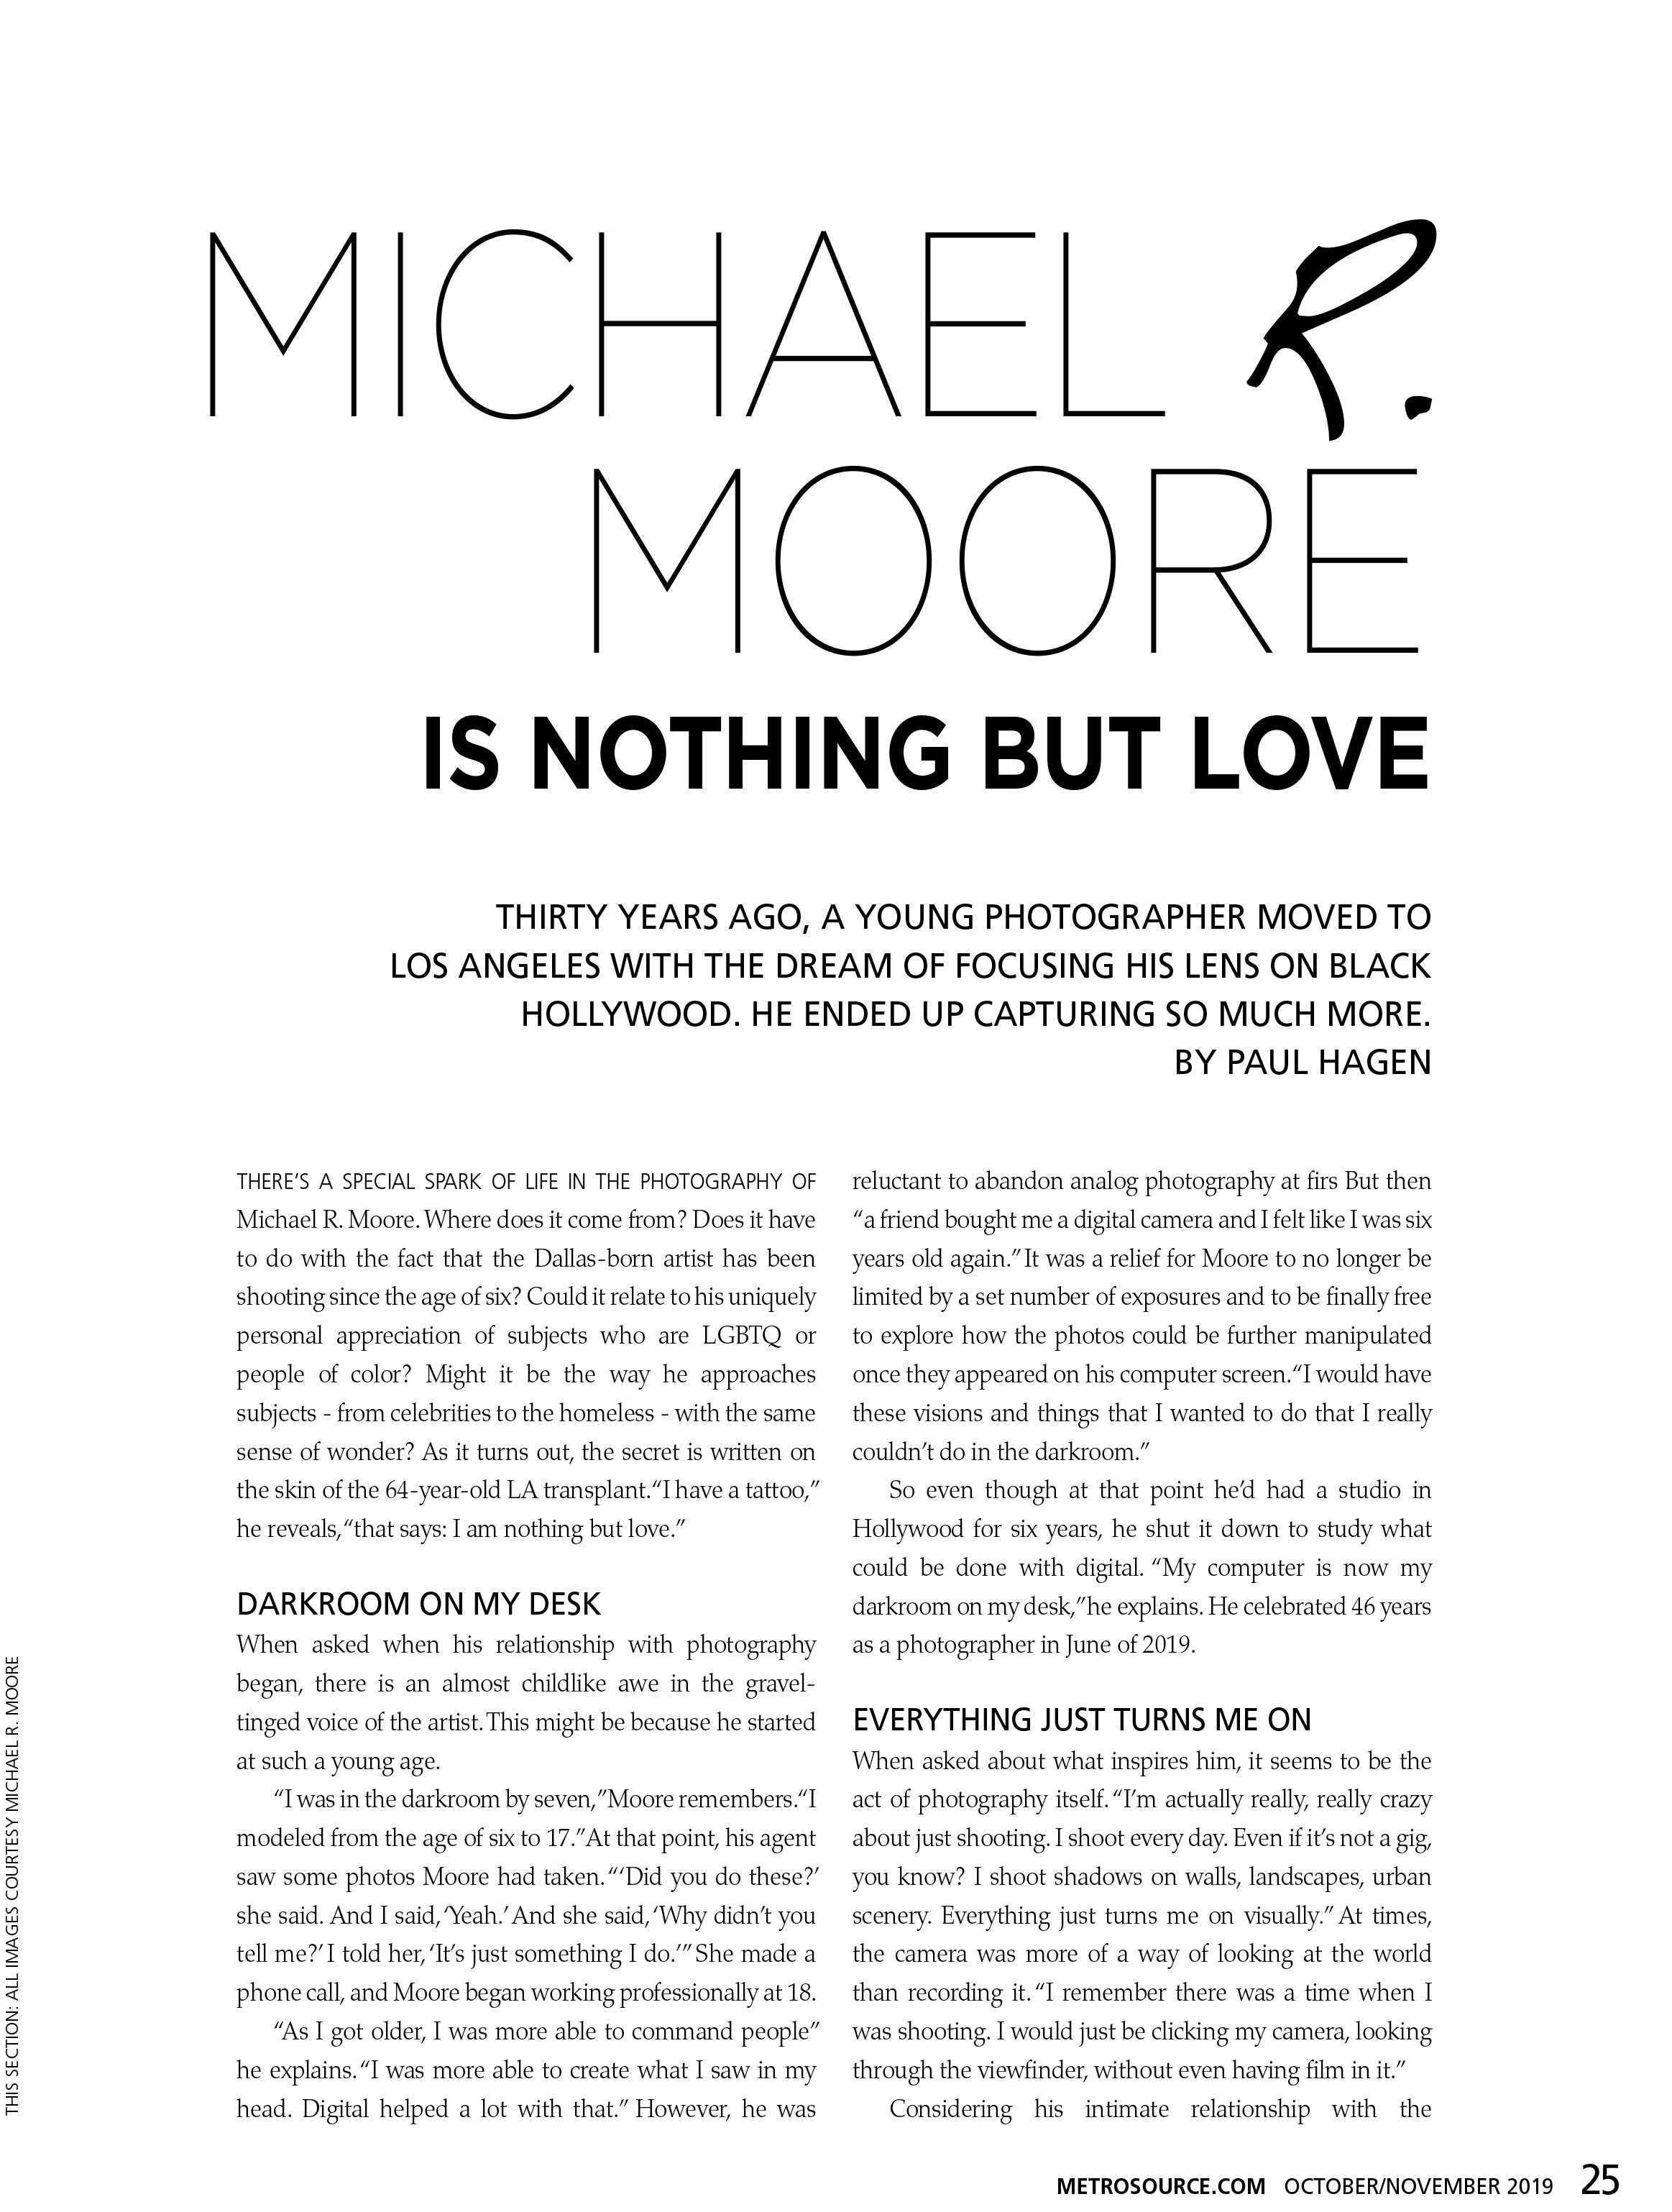 MICHAEL R. MOORE METRO SOURCE MAGAZINE FEATURED INTERVIEW Pg.25